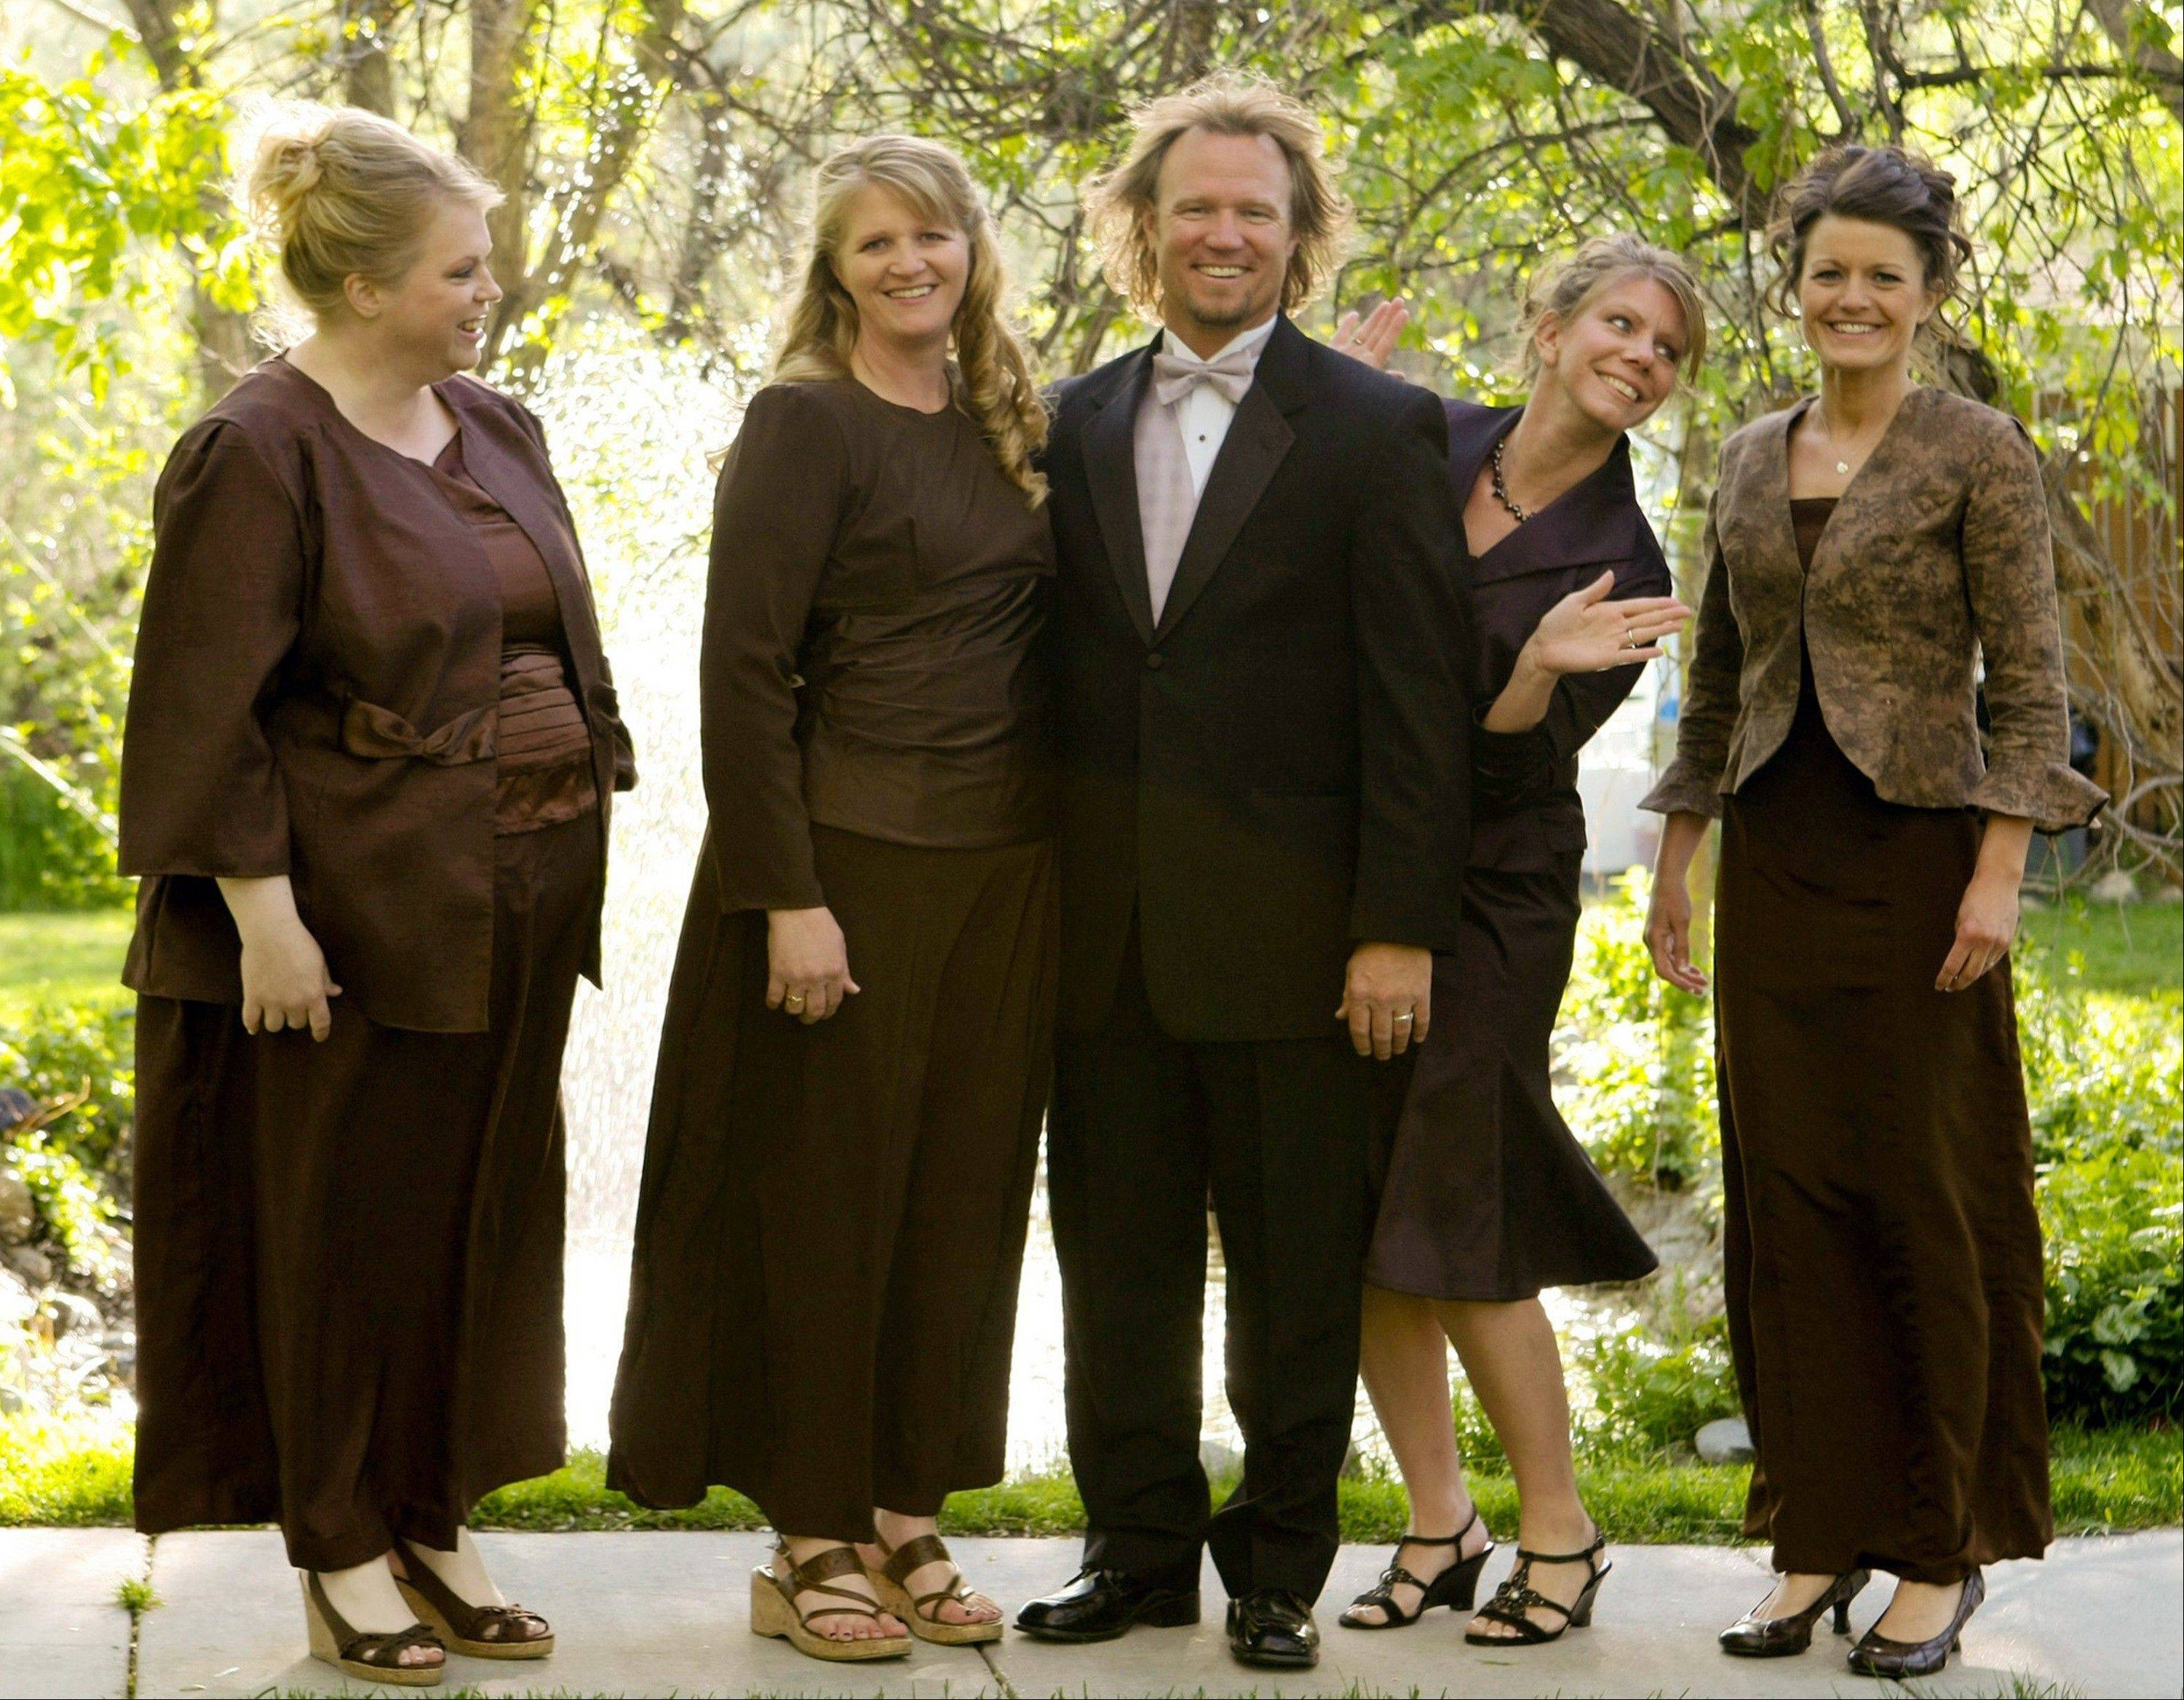 Kody Brown, center, poses with his wives, from left, Janelle, Christine, Meri and Robyn in a promotional photo for TLC�s reality TV show, �Sister Wives.� Utah has said it won�t prosecute consenting adult polygamists unless there are other crimes involved.